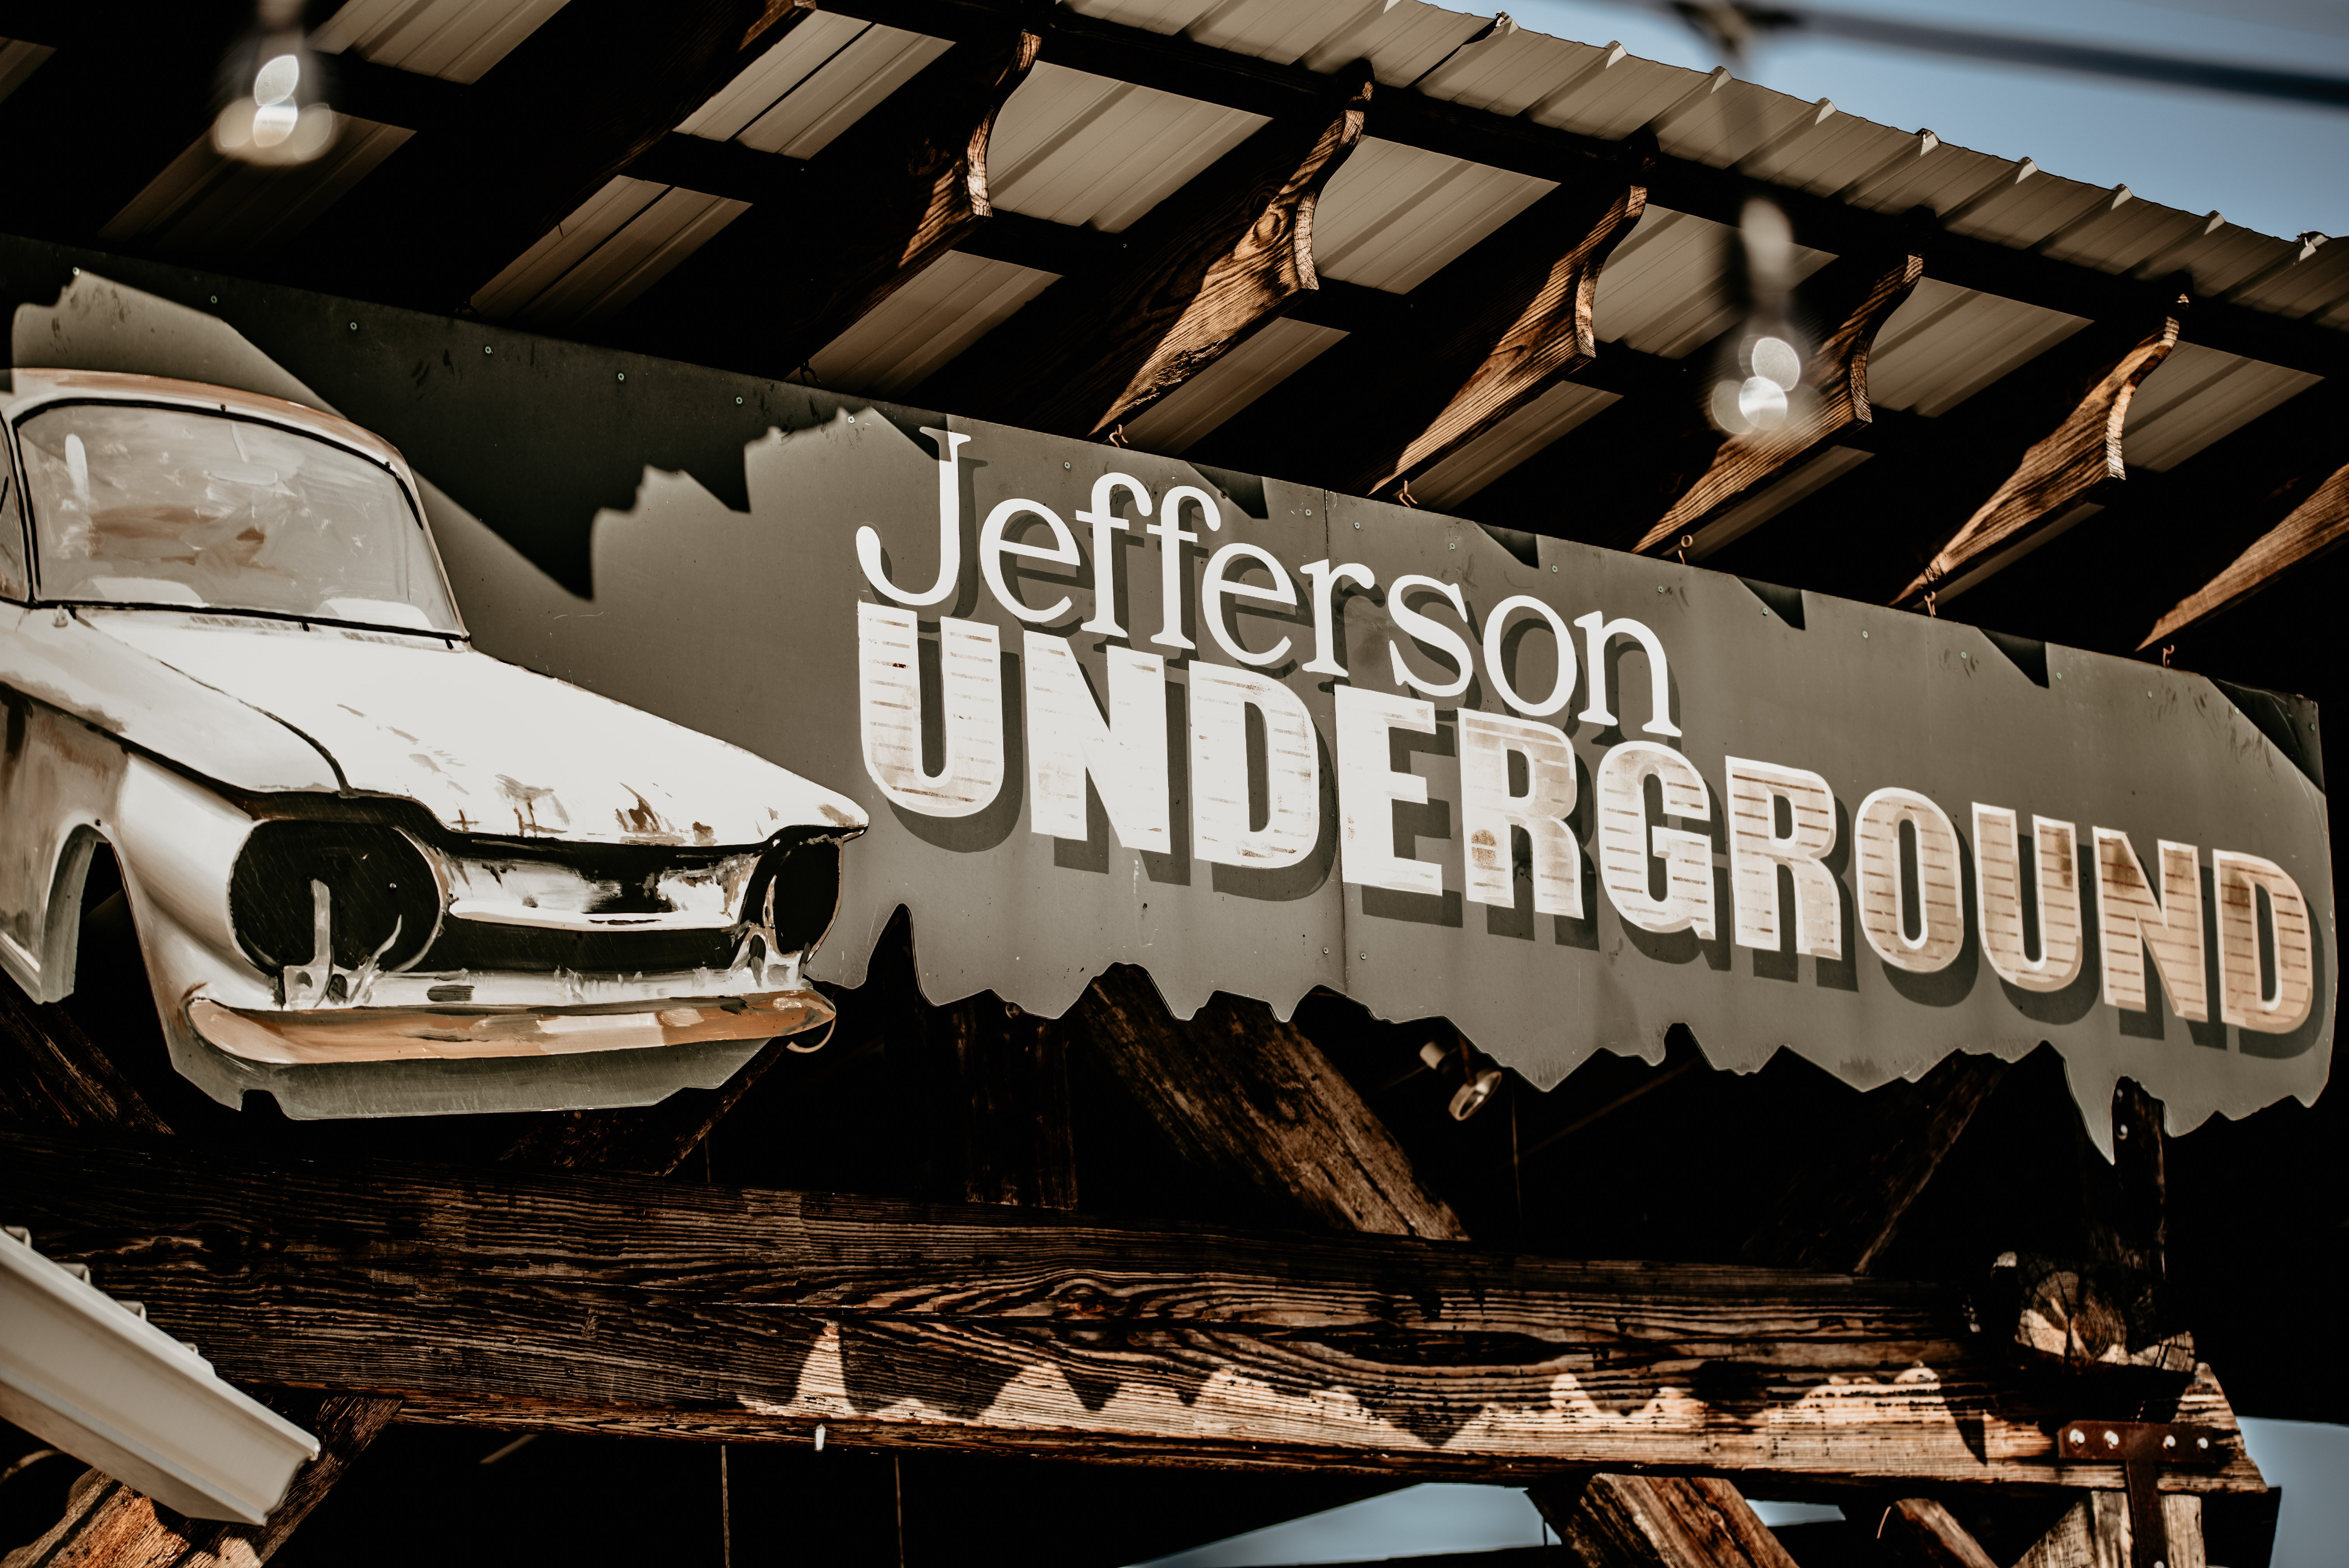 Jeffereson Underground Wedding